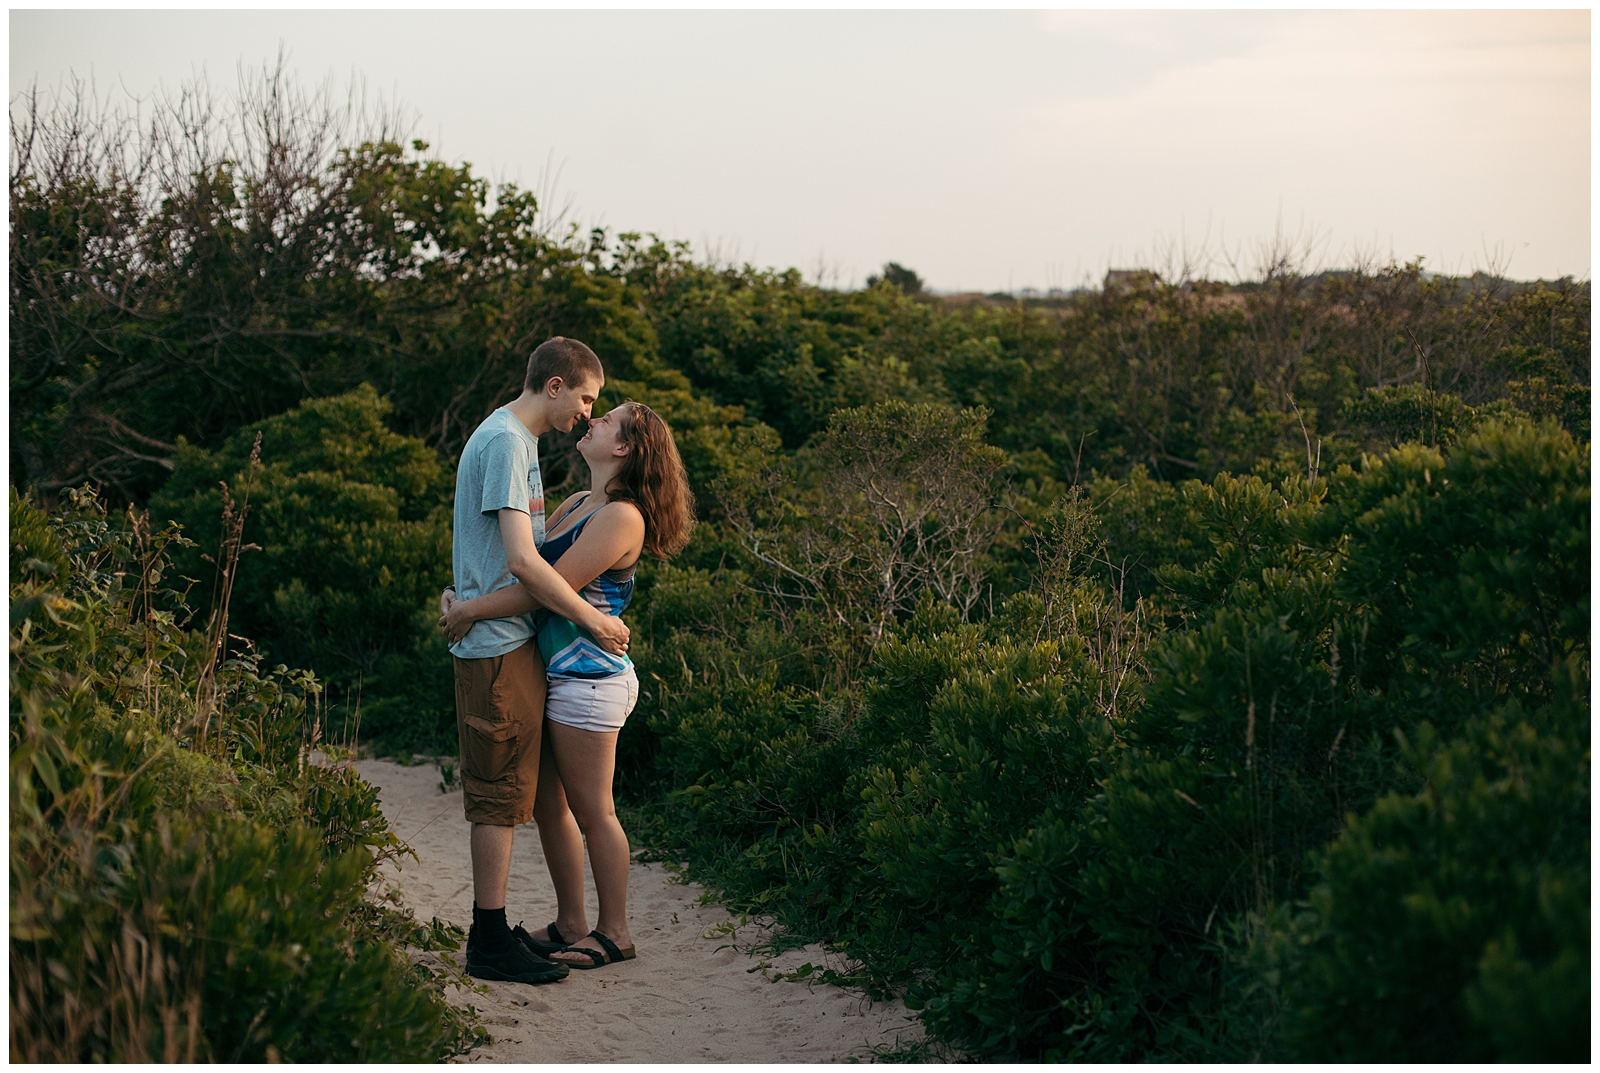 Block-Island-Engagement-Session-Bailey-Q-Photo-Boston-Wedding-Photographer-009.jpg